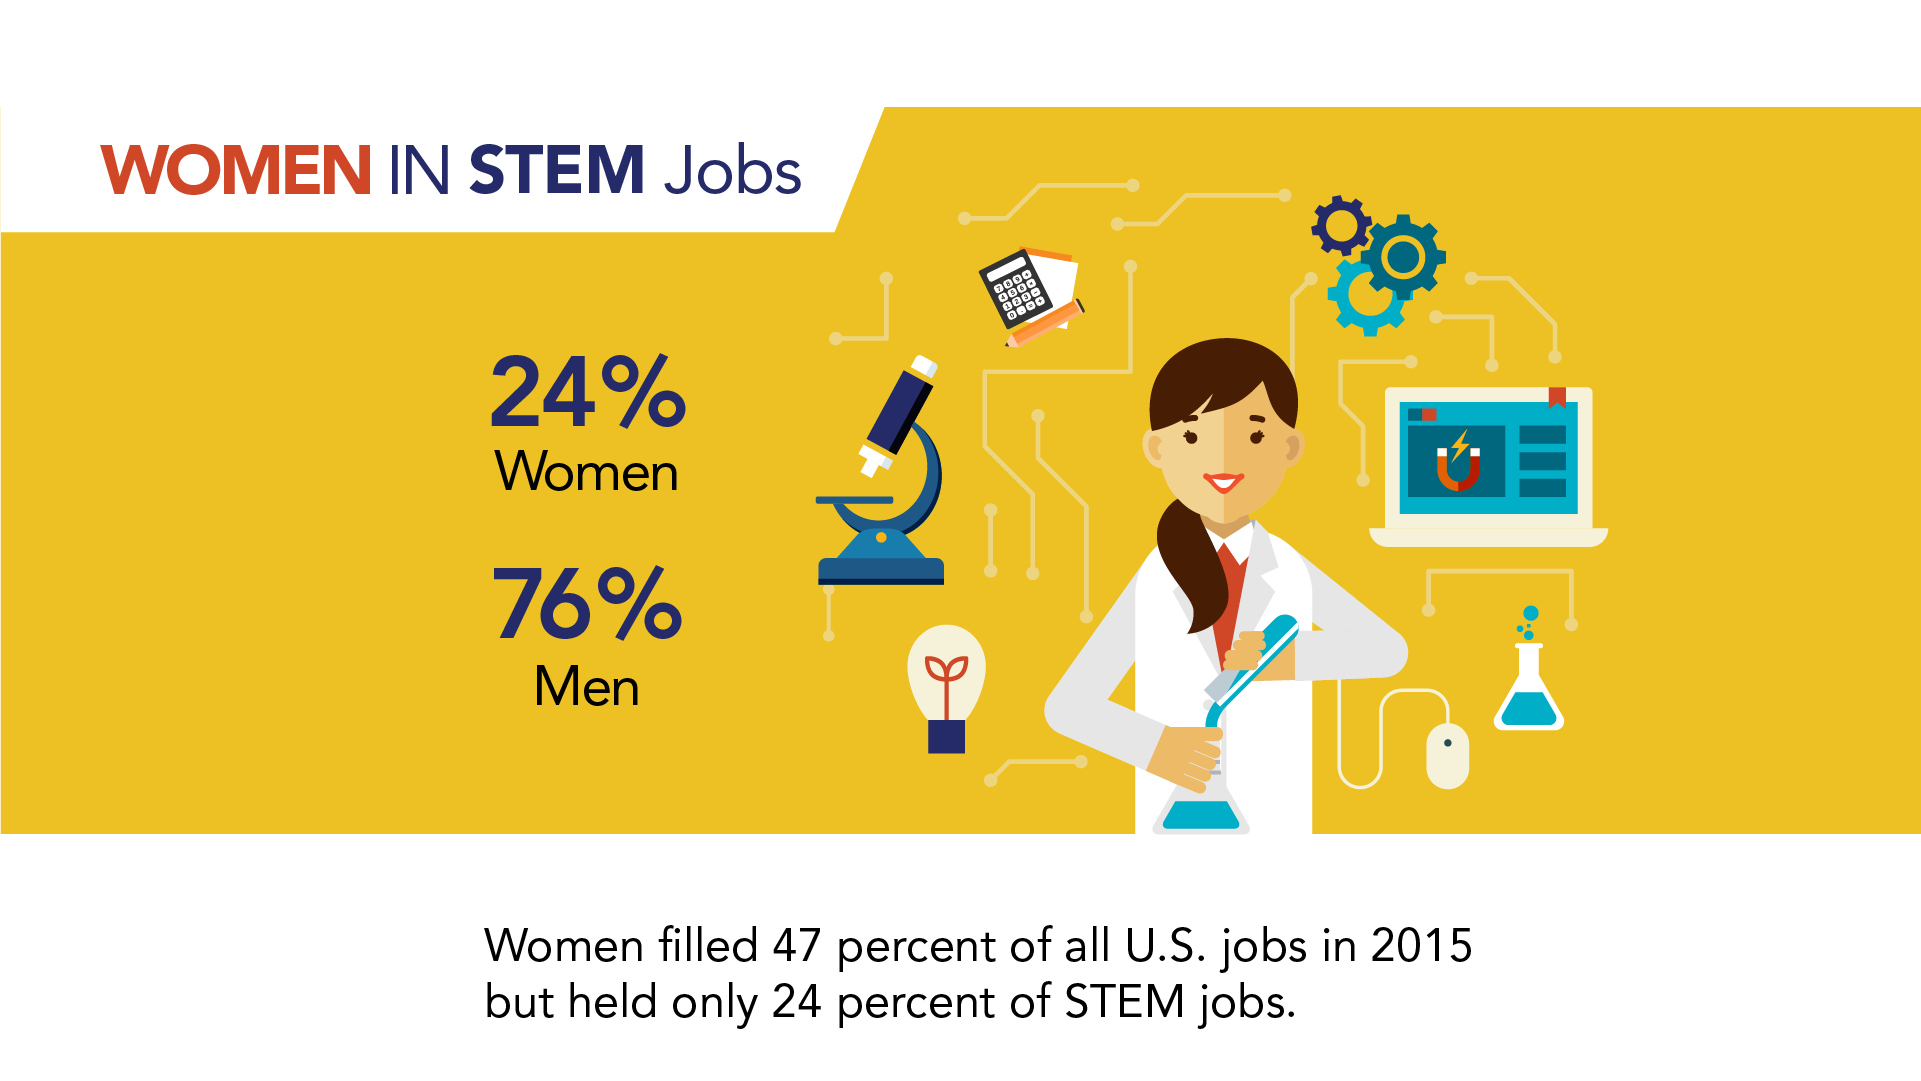 Women in STEM Jobs, 24% Women, 76% Men